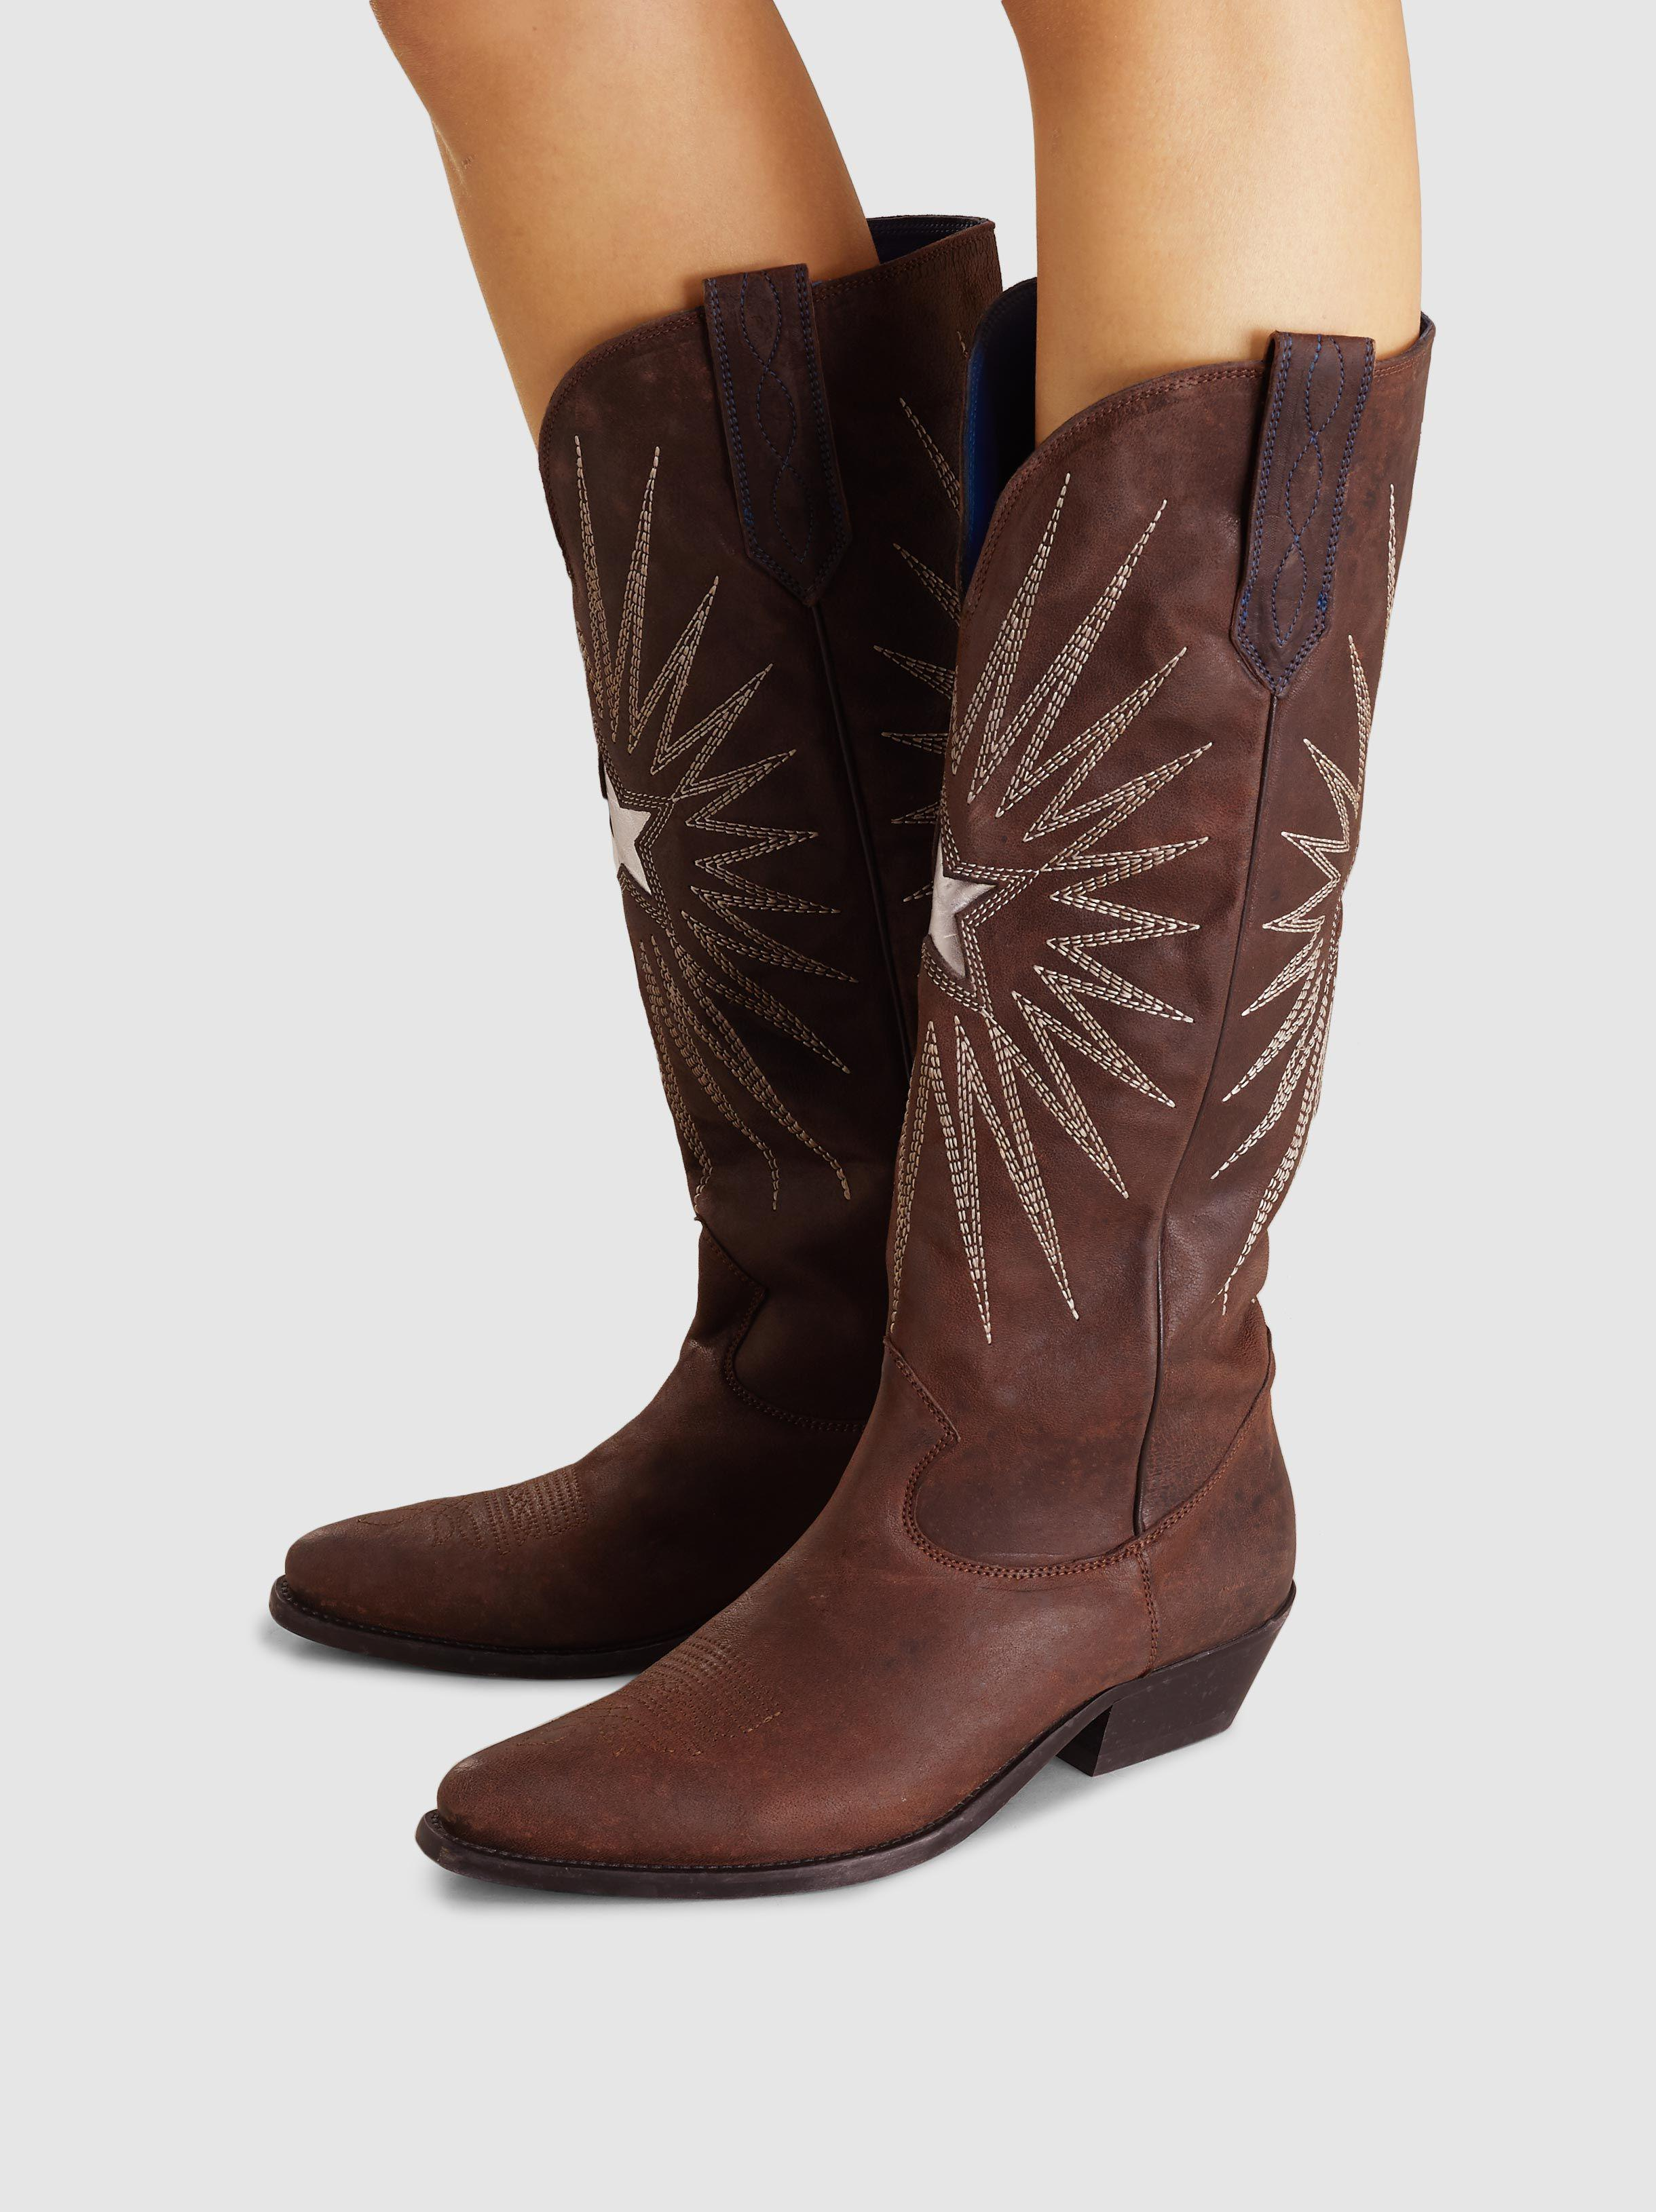 5ecfac91920a Lyst - Golden Goose Deluxe Brand Wish Star Embroidered Leather Boots ...